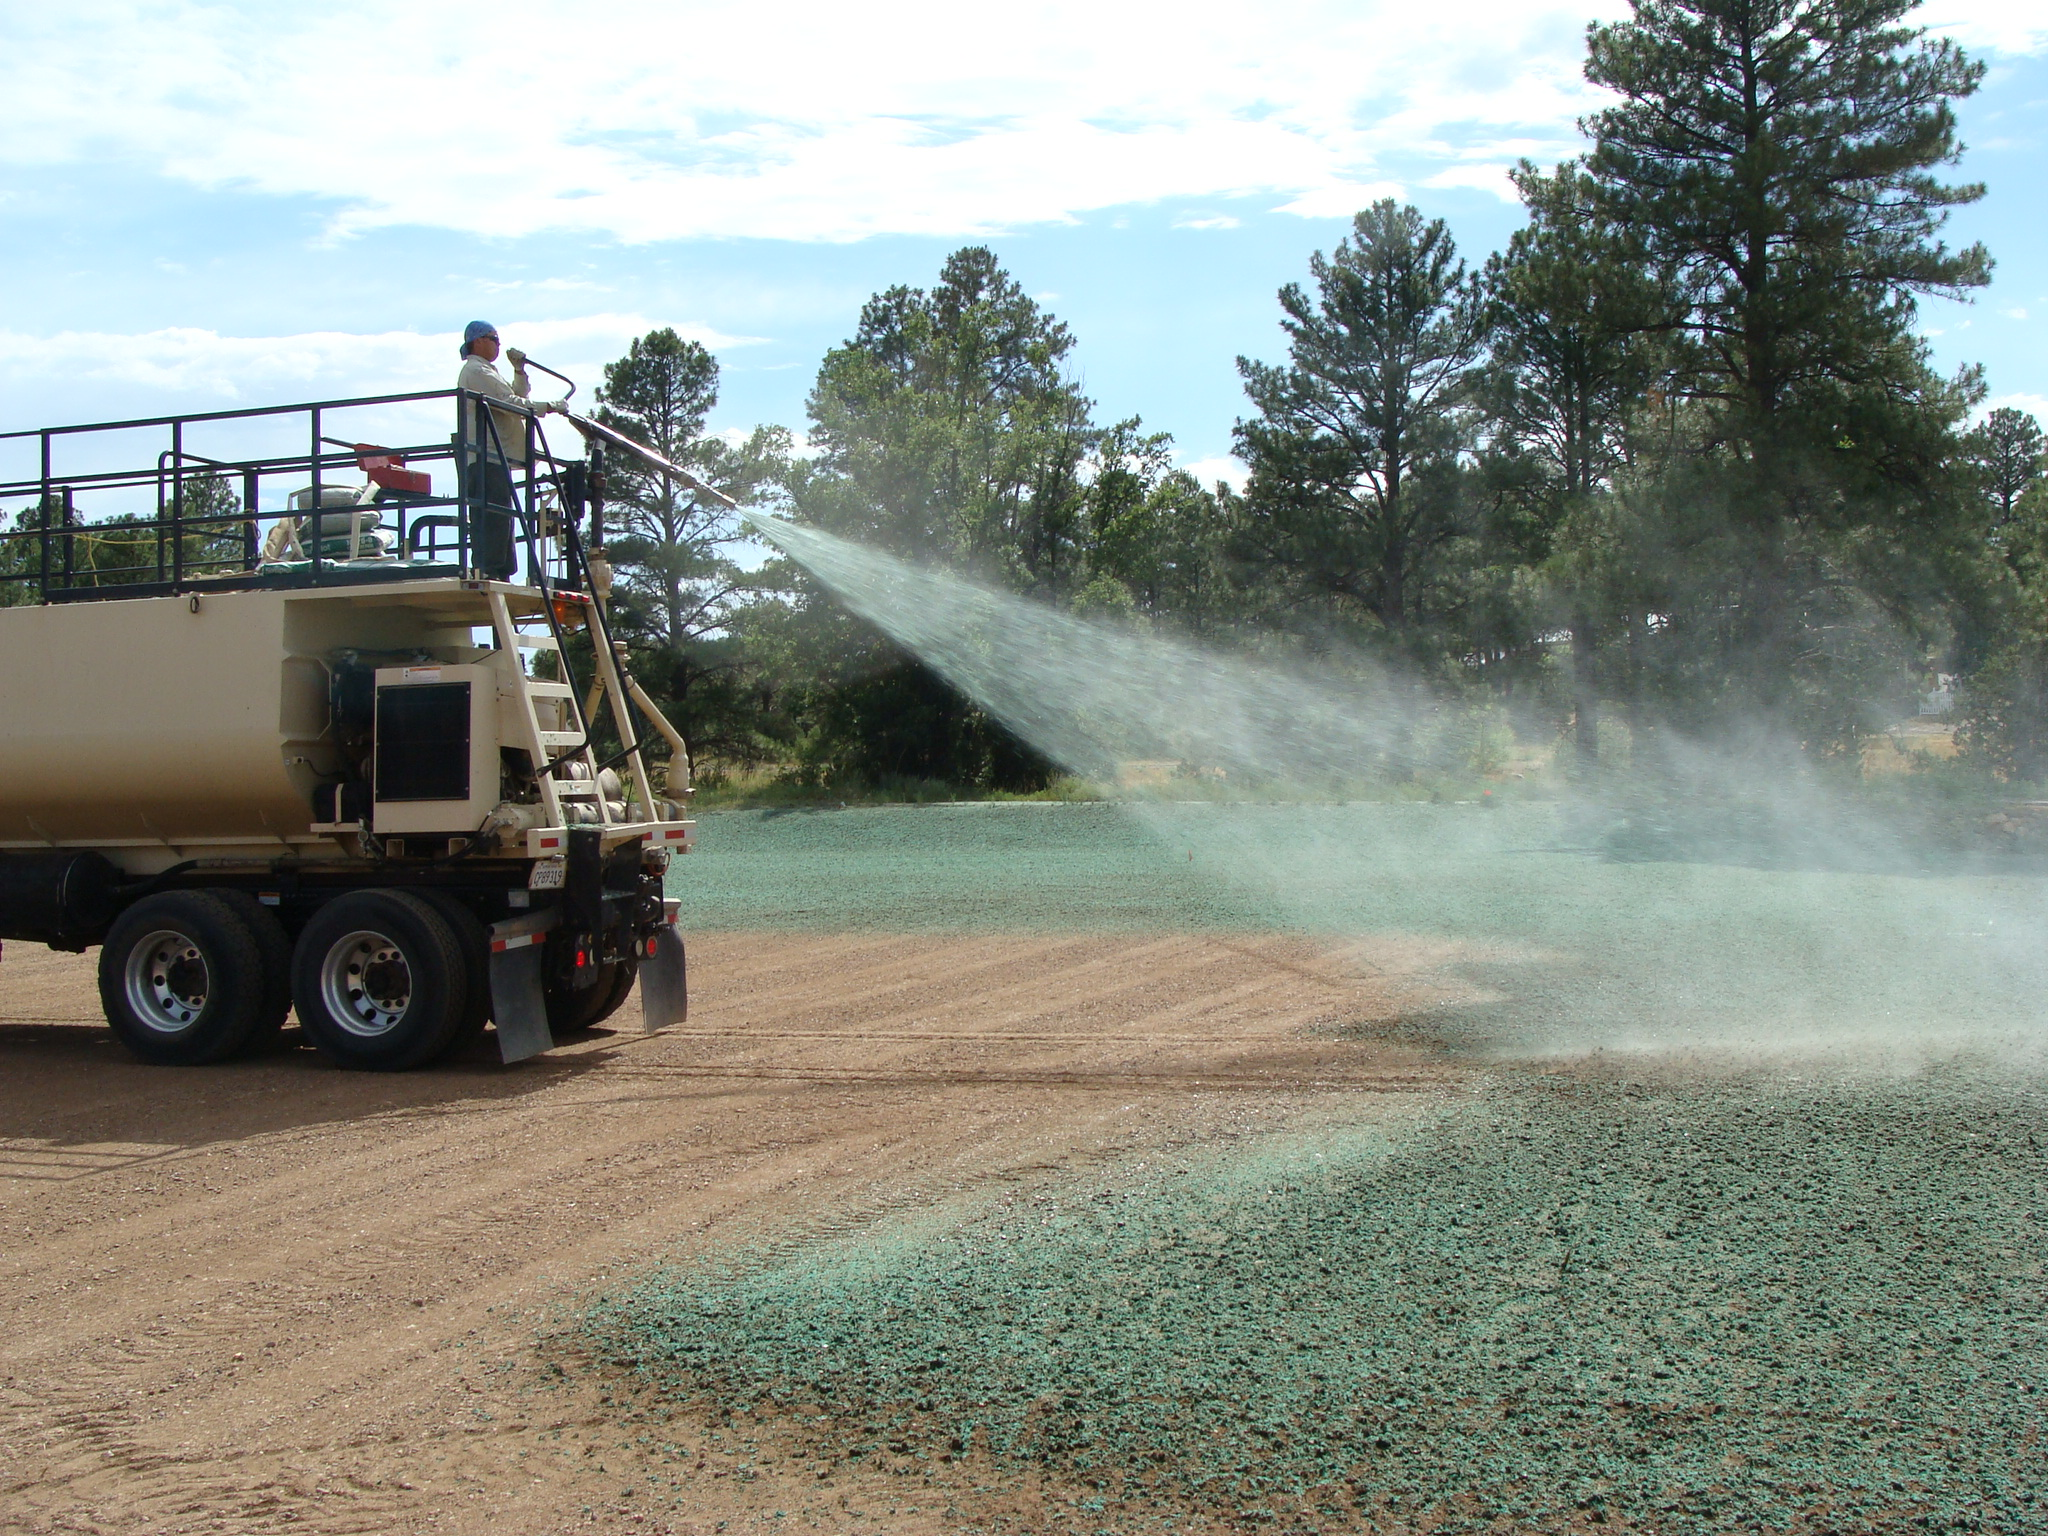 Nicklaus Park hydro-seeding